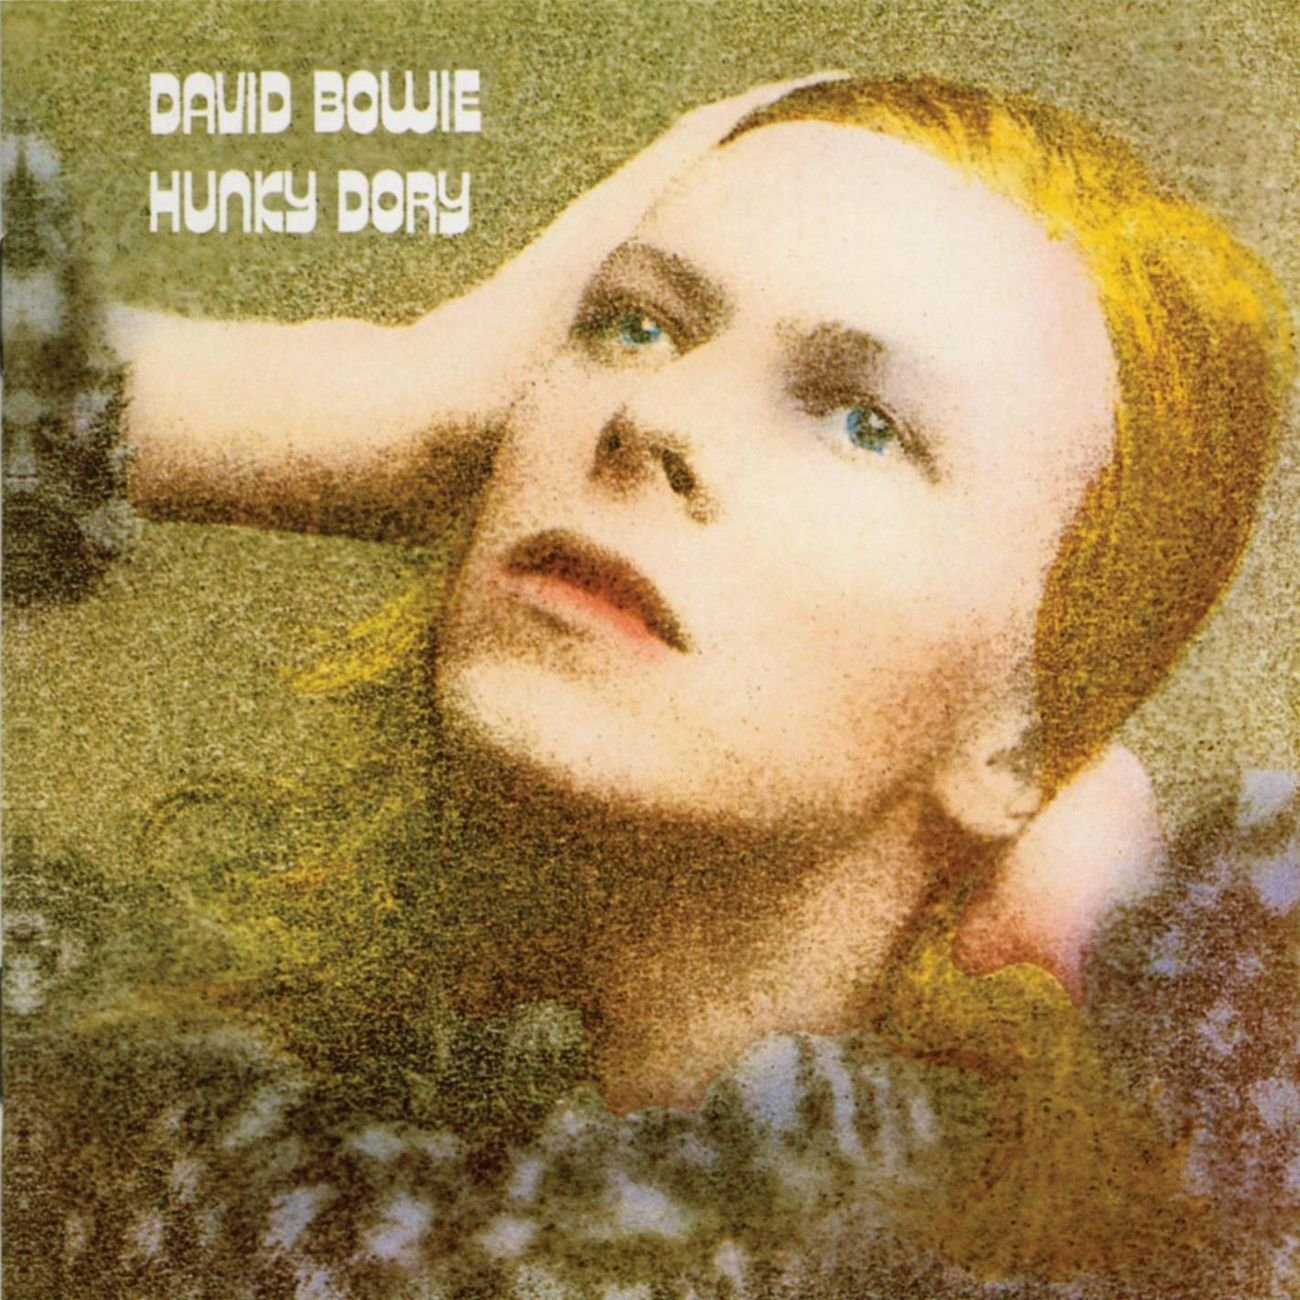 jaquettes4/David-Bowie_Hunky-Dory.jpg